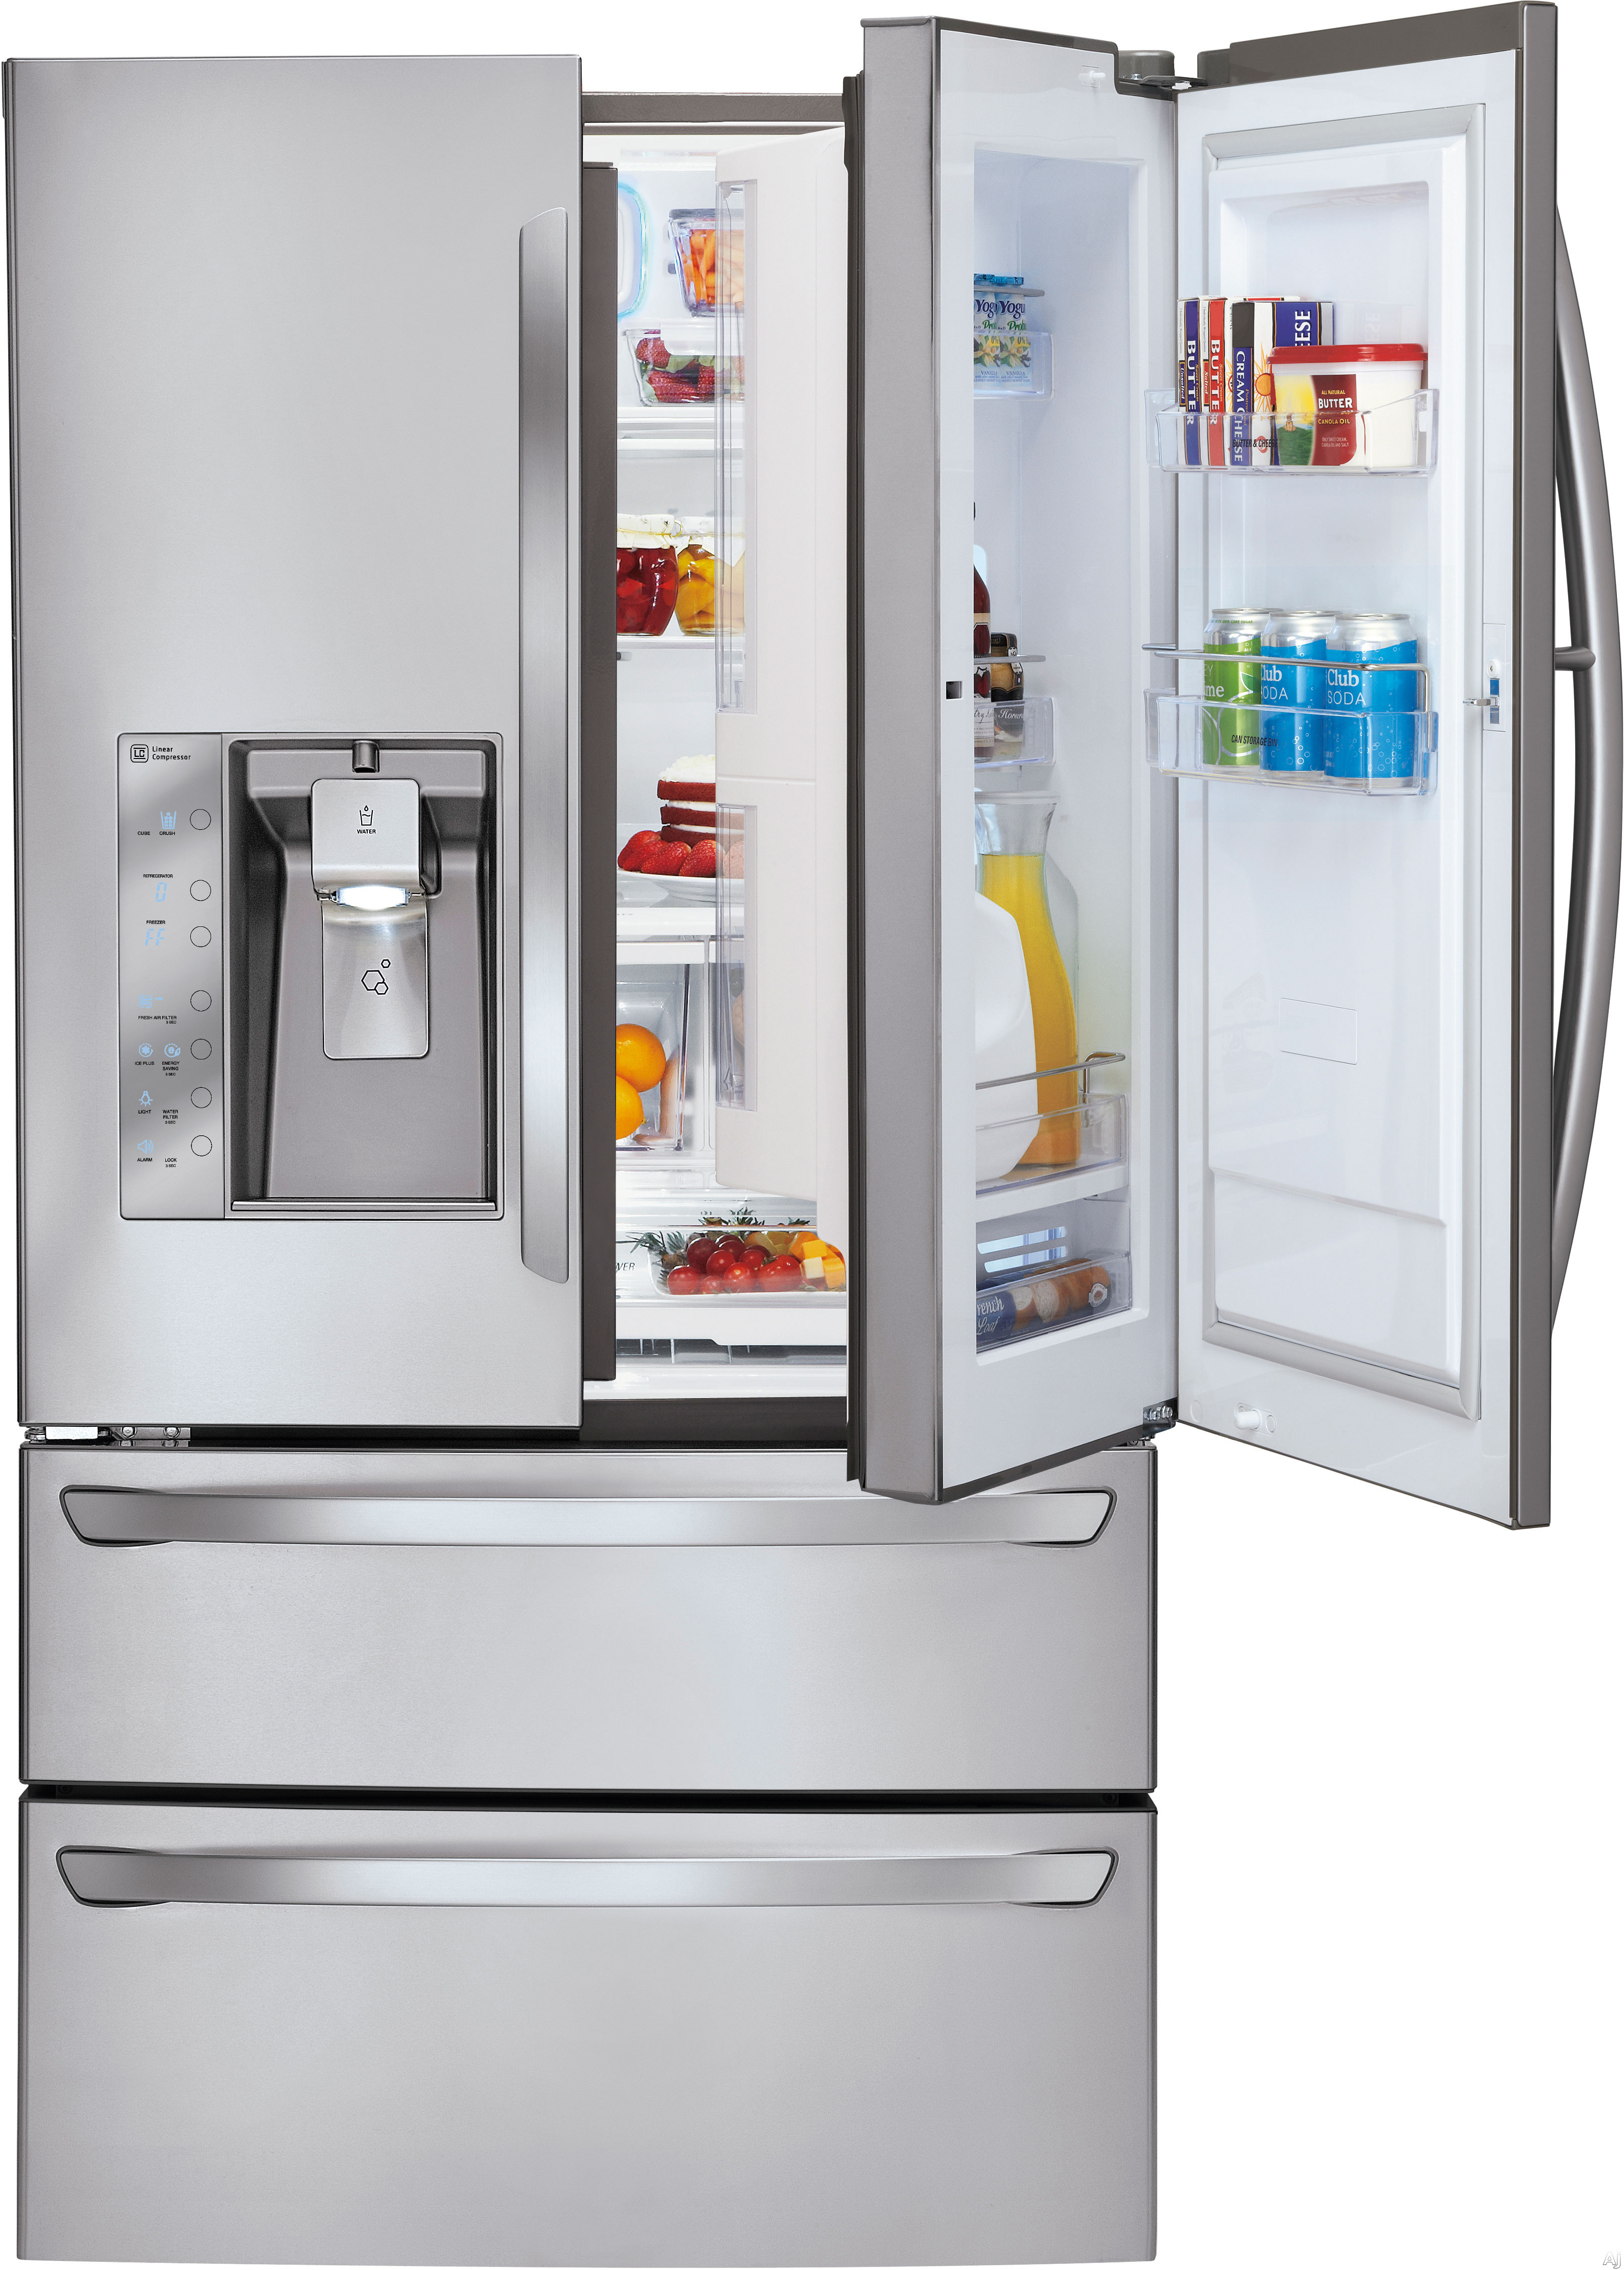 Lg Lmx30995st 30 3 Cu Ft French Door Refrigerator With